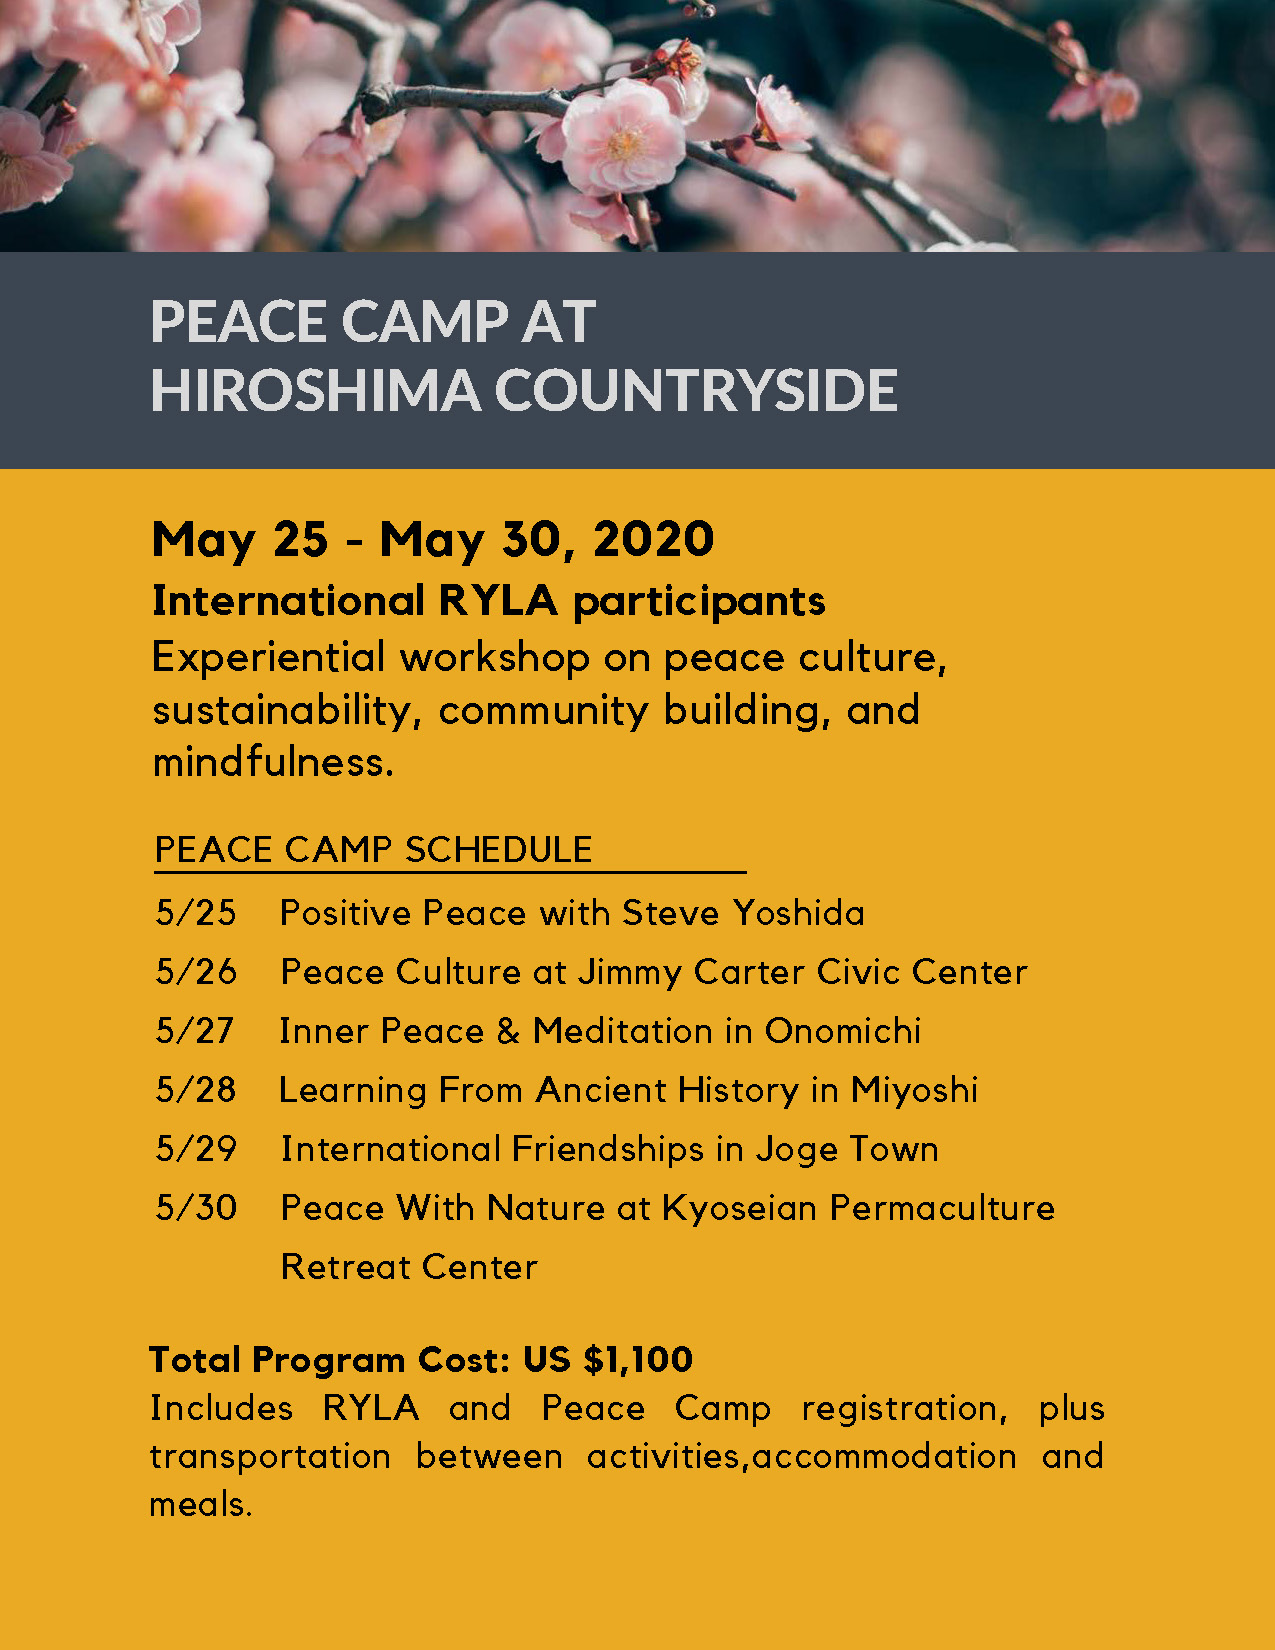 RYLA_IN_HIROSHIMA_Reduced_Size_Page_4.jpg